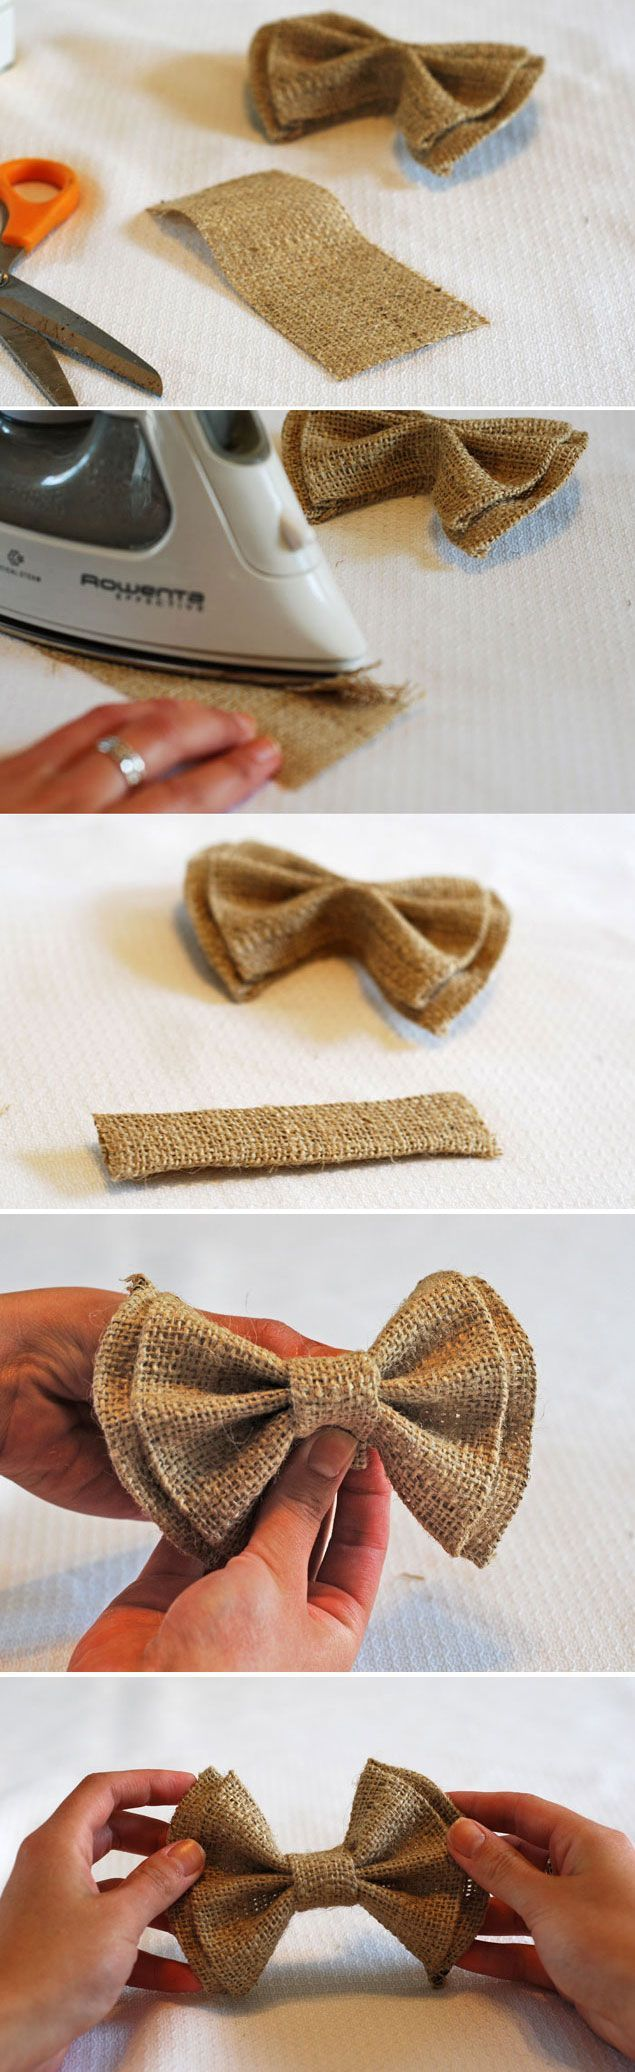 No Sew DIY Clip on Bow Ties - could make regular ties out of burlap as well.  There is also colored burlap.   What a neat idea for a rustic or woodland theme.